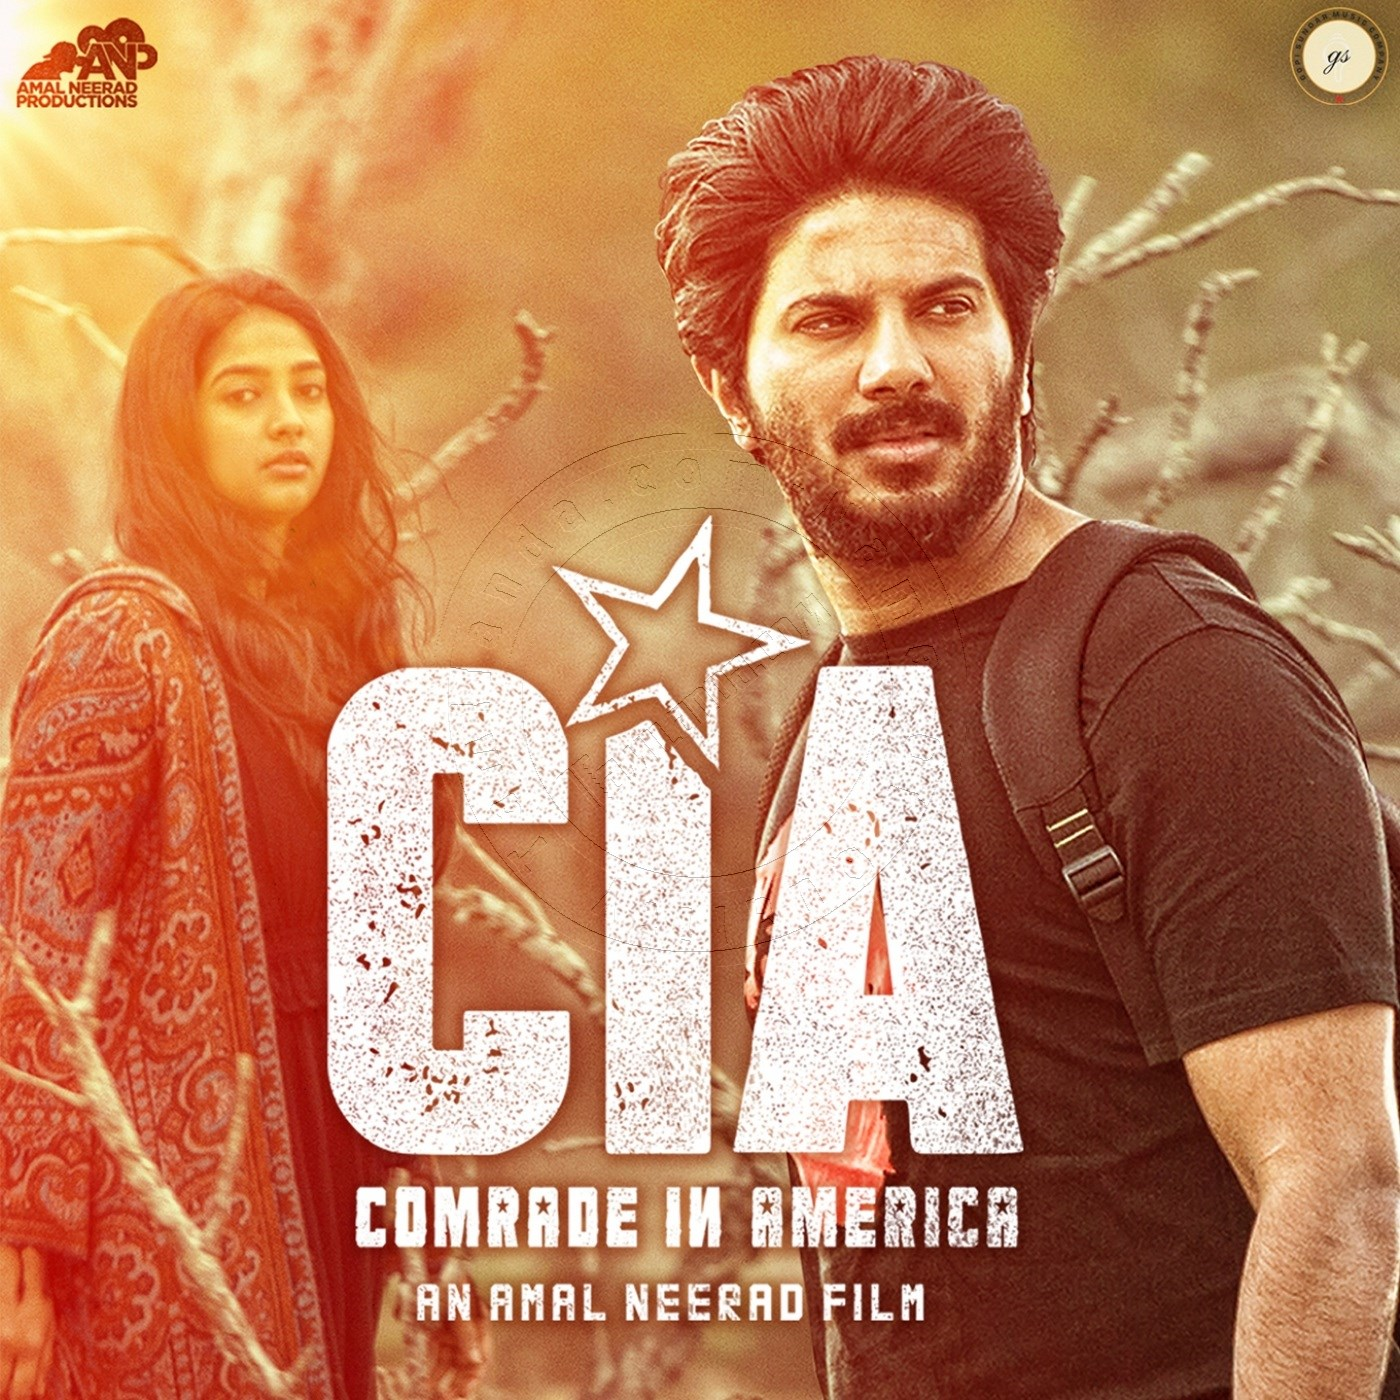 CIA – Comrade In America 16 BIT FLAC Songs